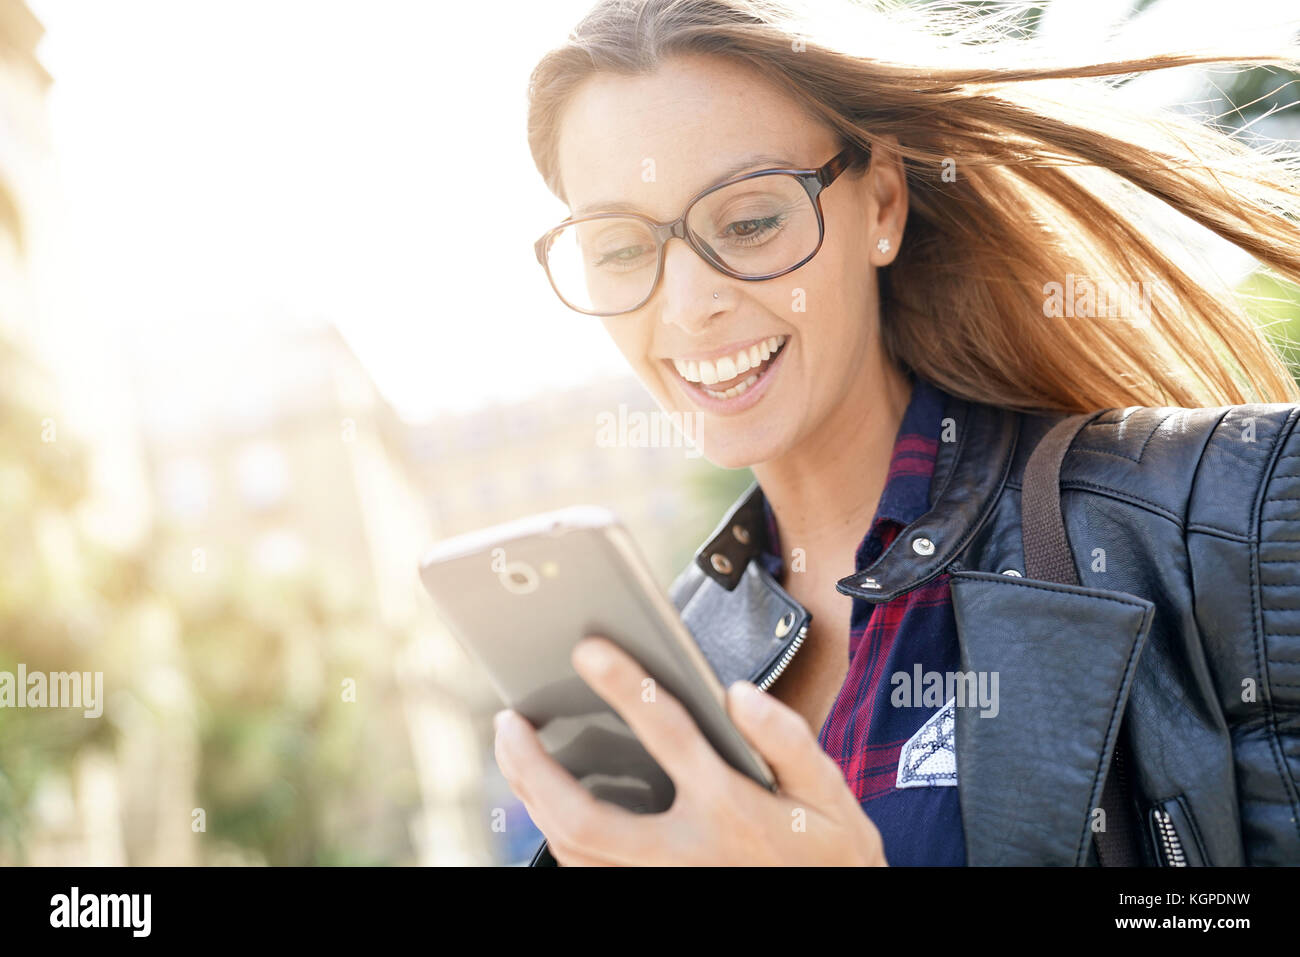 Portrait of trendy girl in town using smartphone - Stock Image